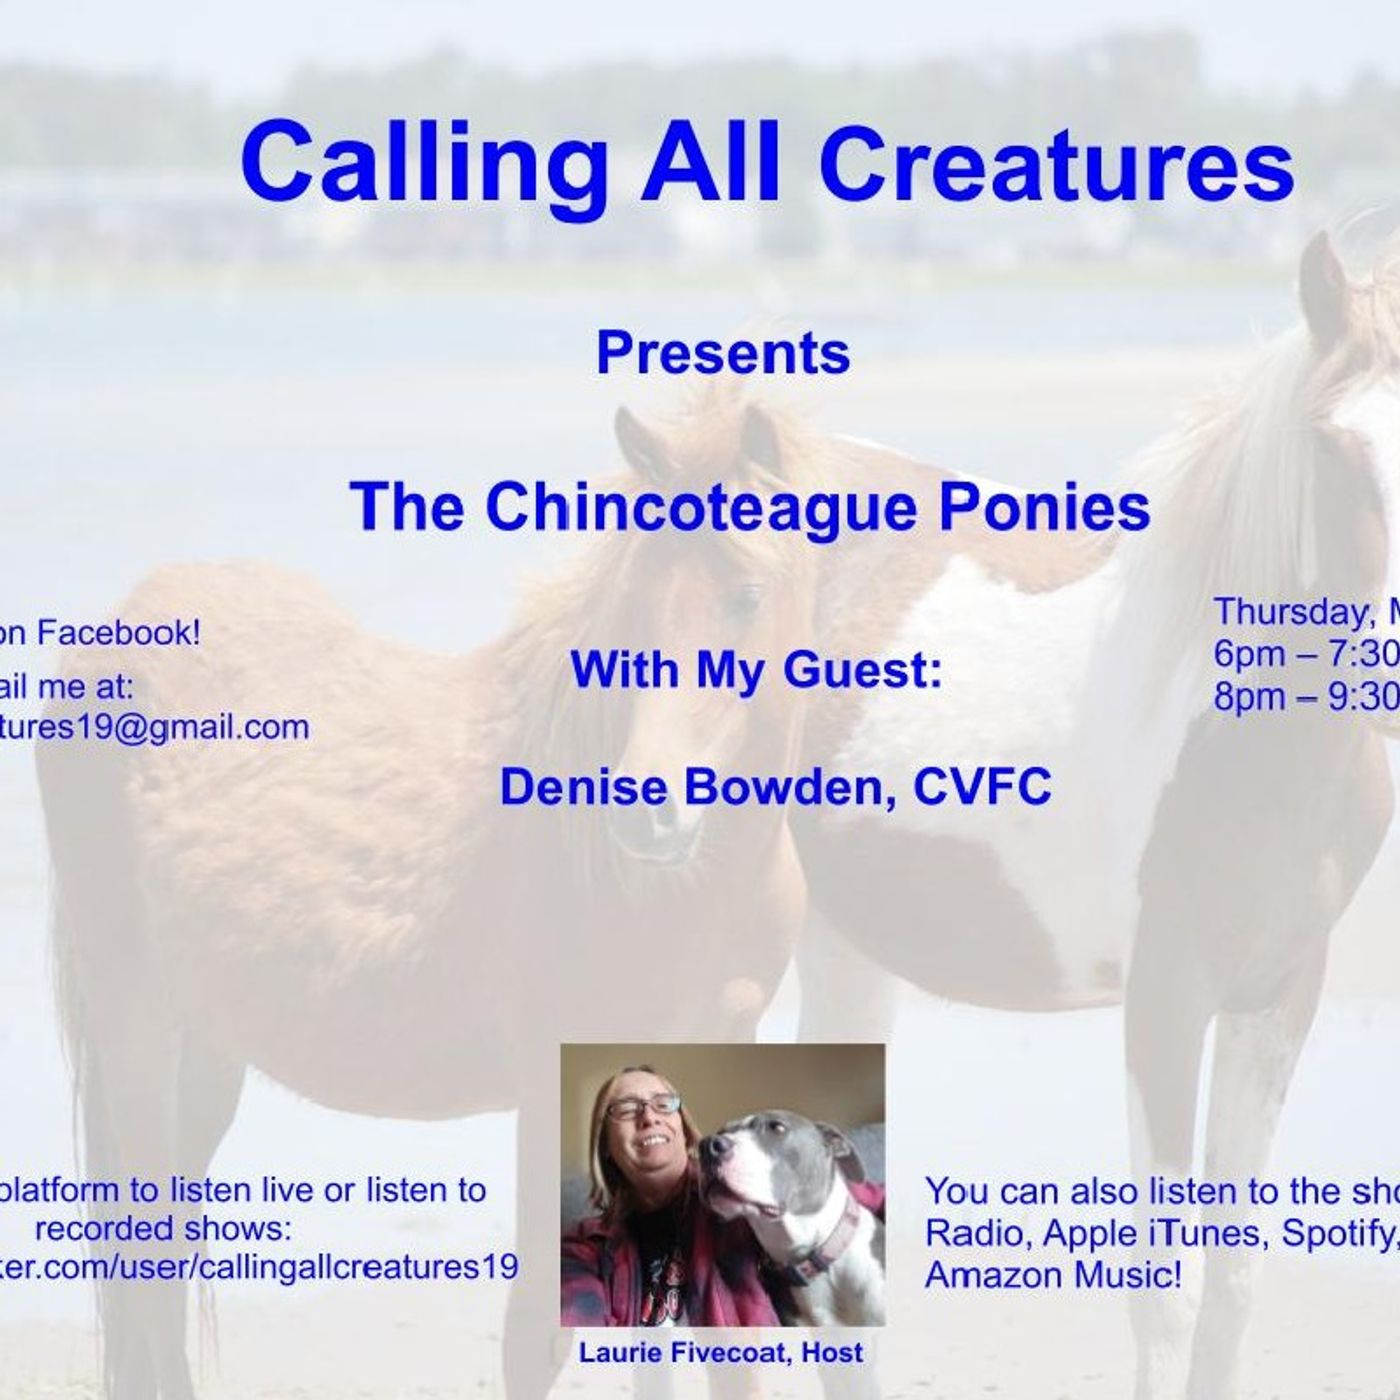 Calling All Creatures Presents The Chincoteague Ponies